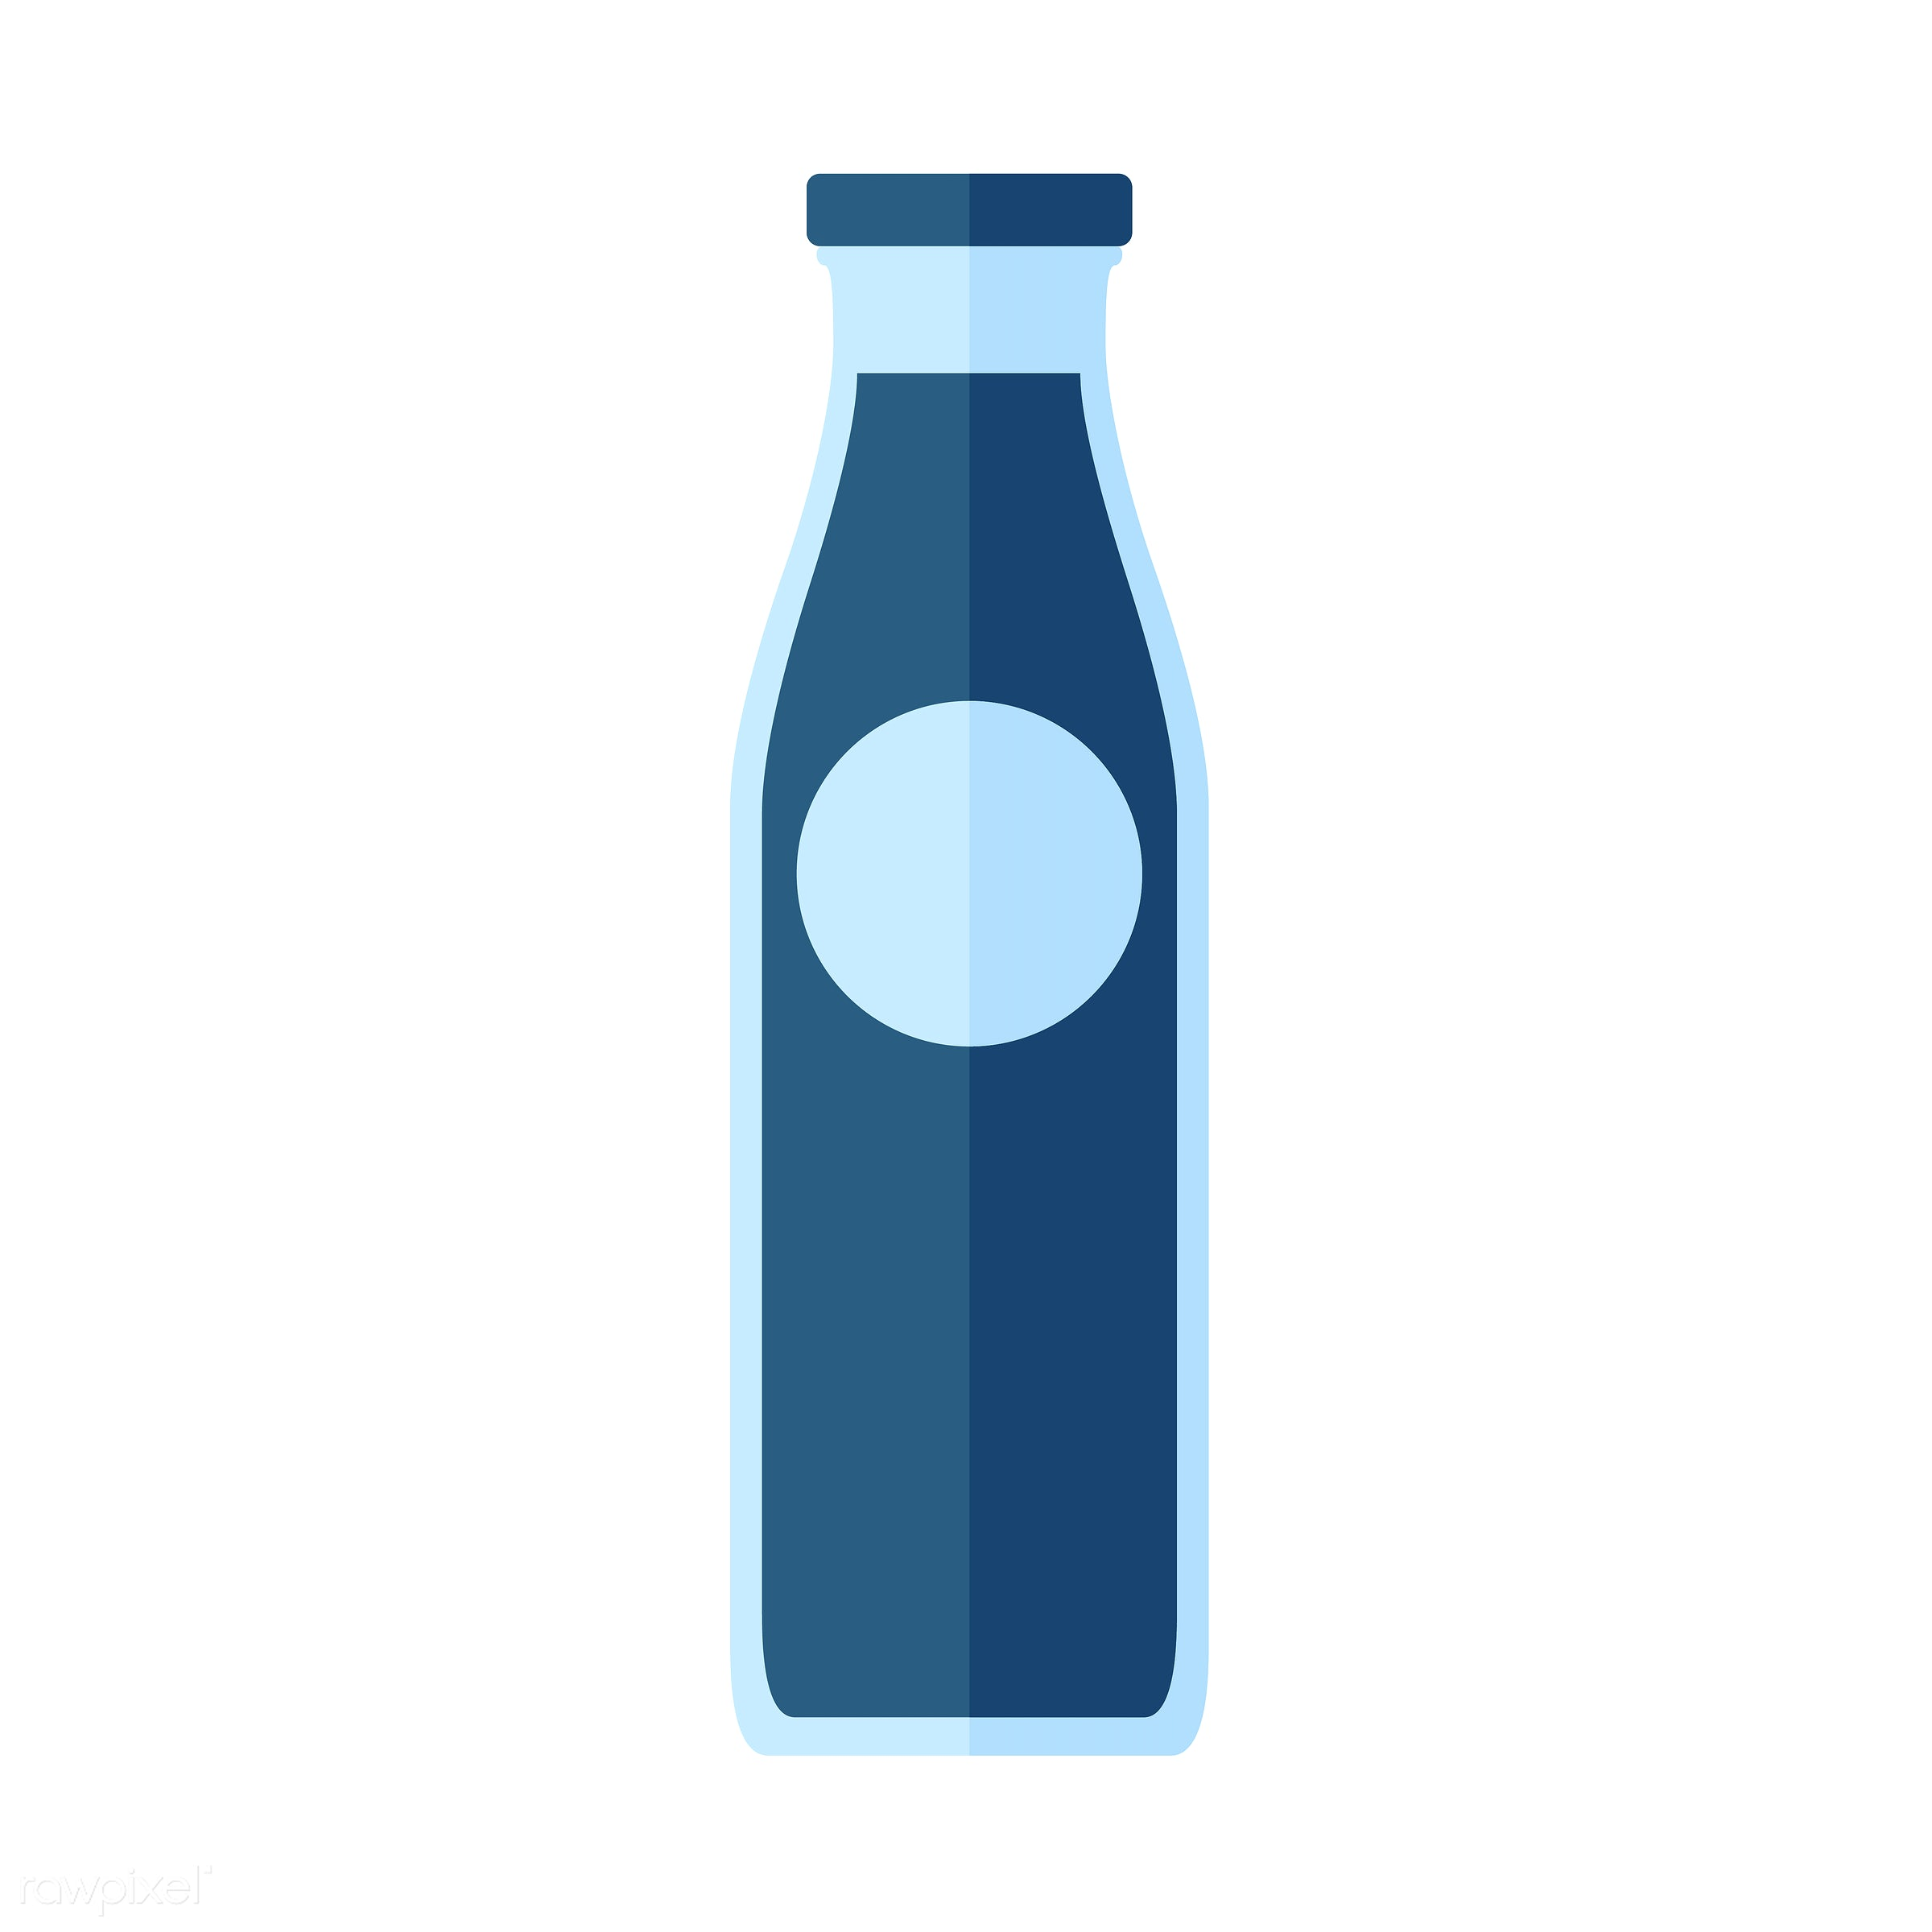 vector, graphic, illustration, icon, symbol, colorful, cute, drink, beverage, water, blue, glass bottle